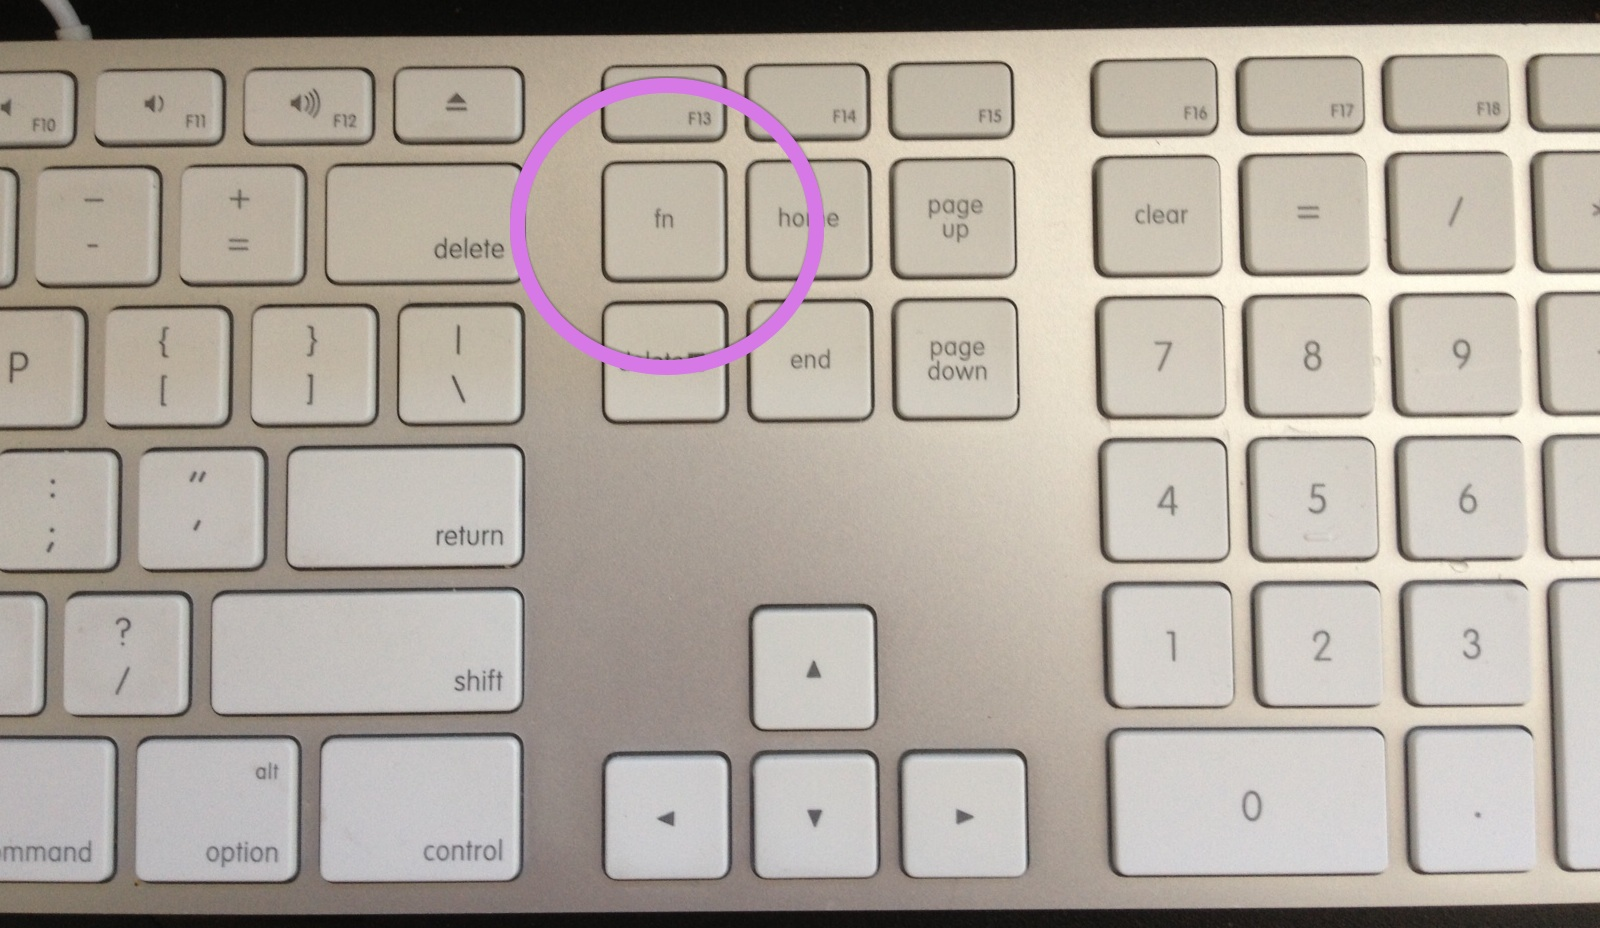 mac f keys meaning